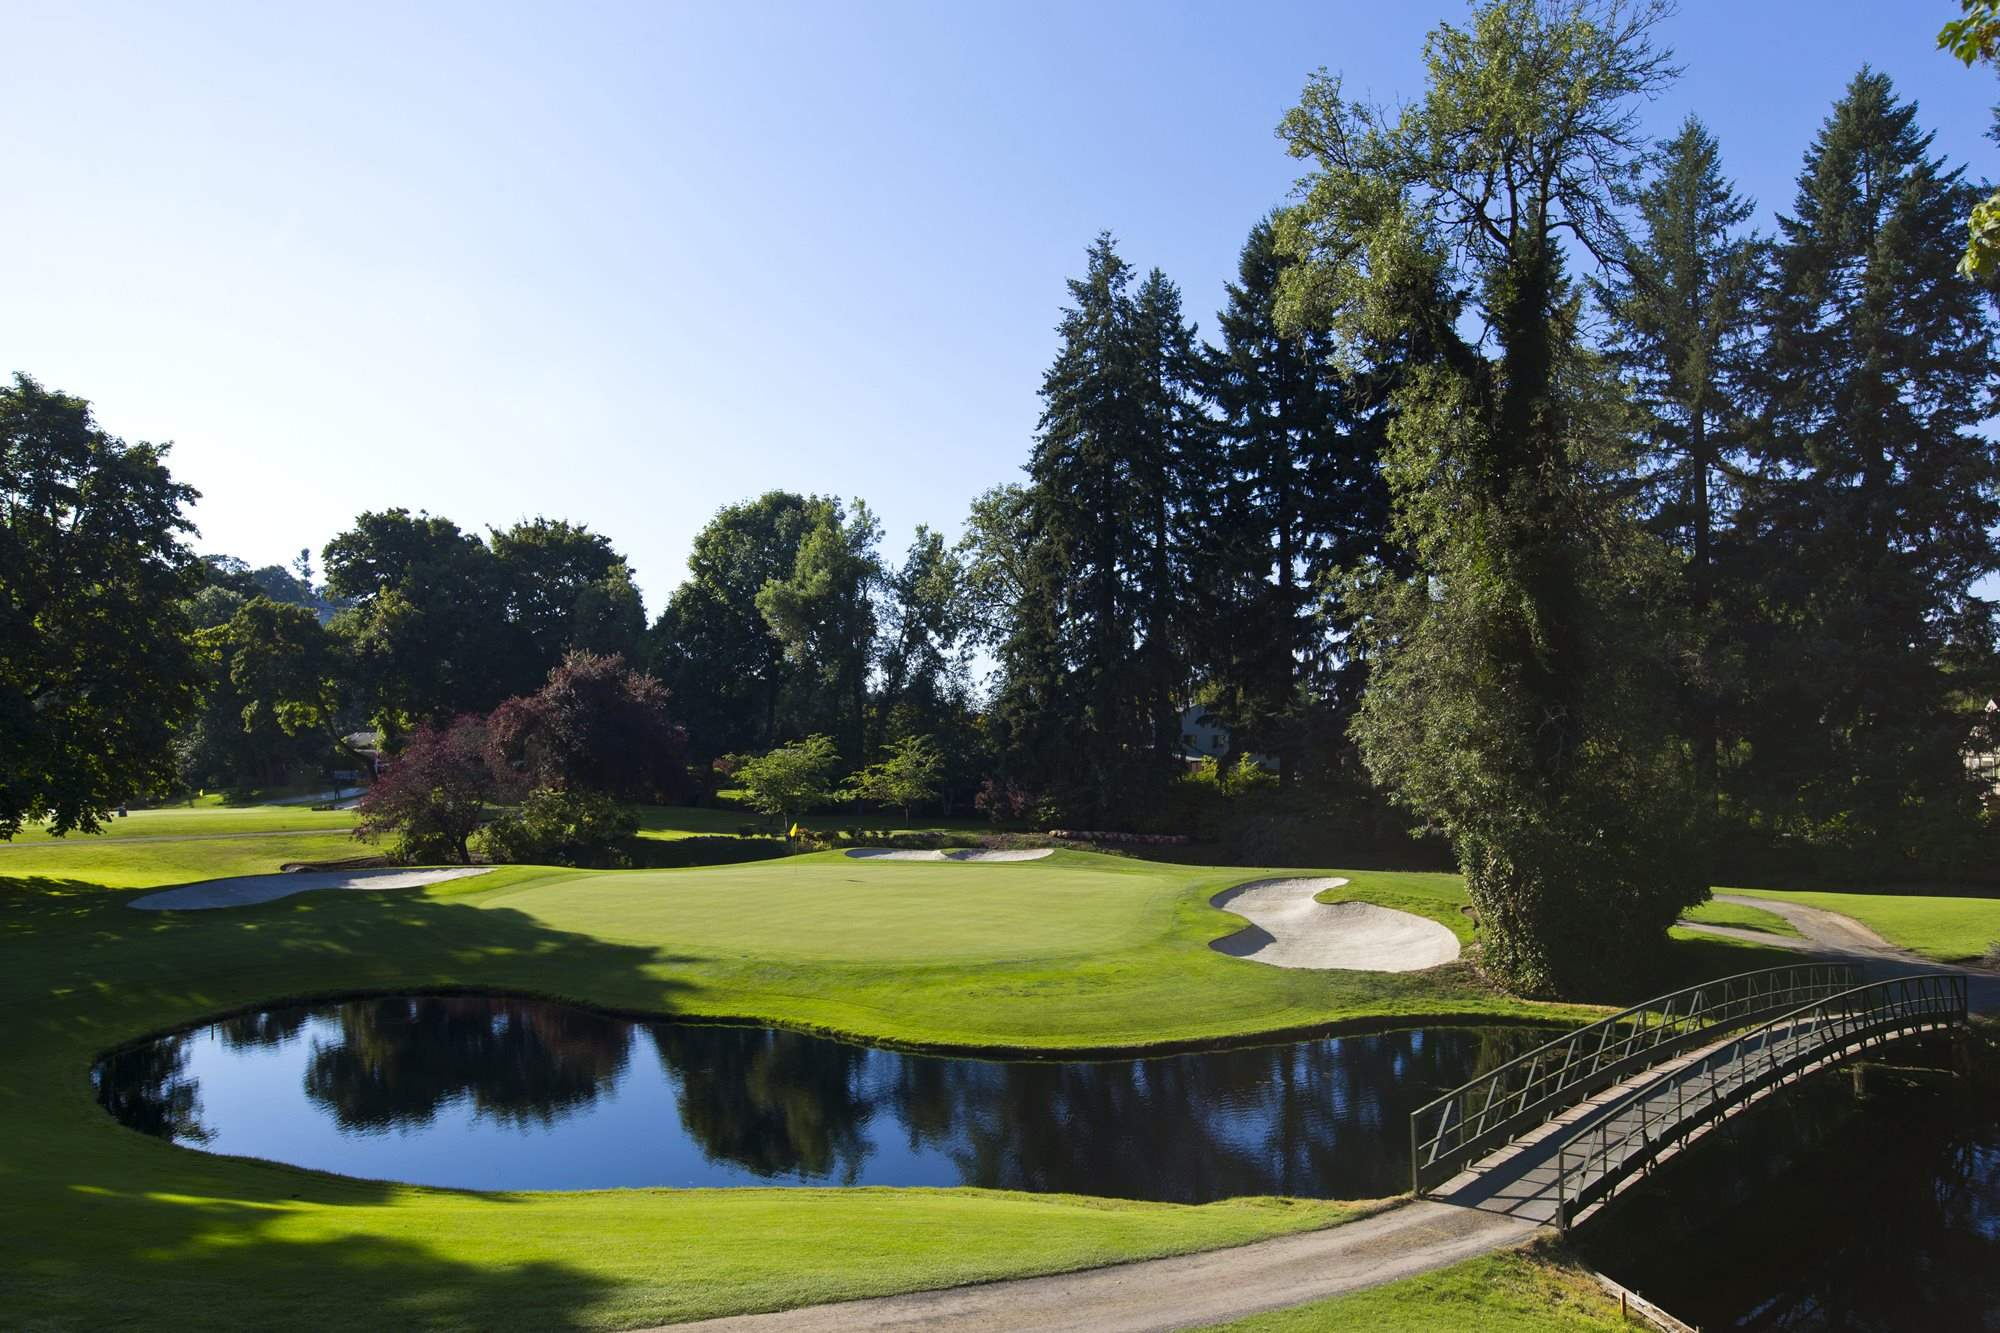 Eugene_Country_Club_11th_Hole_2018_(2)